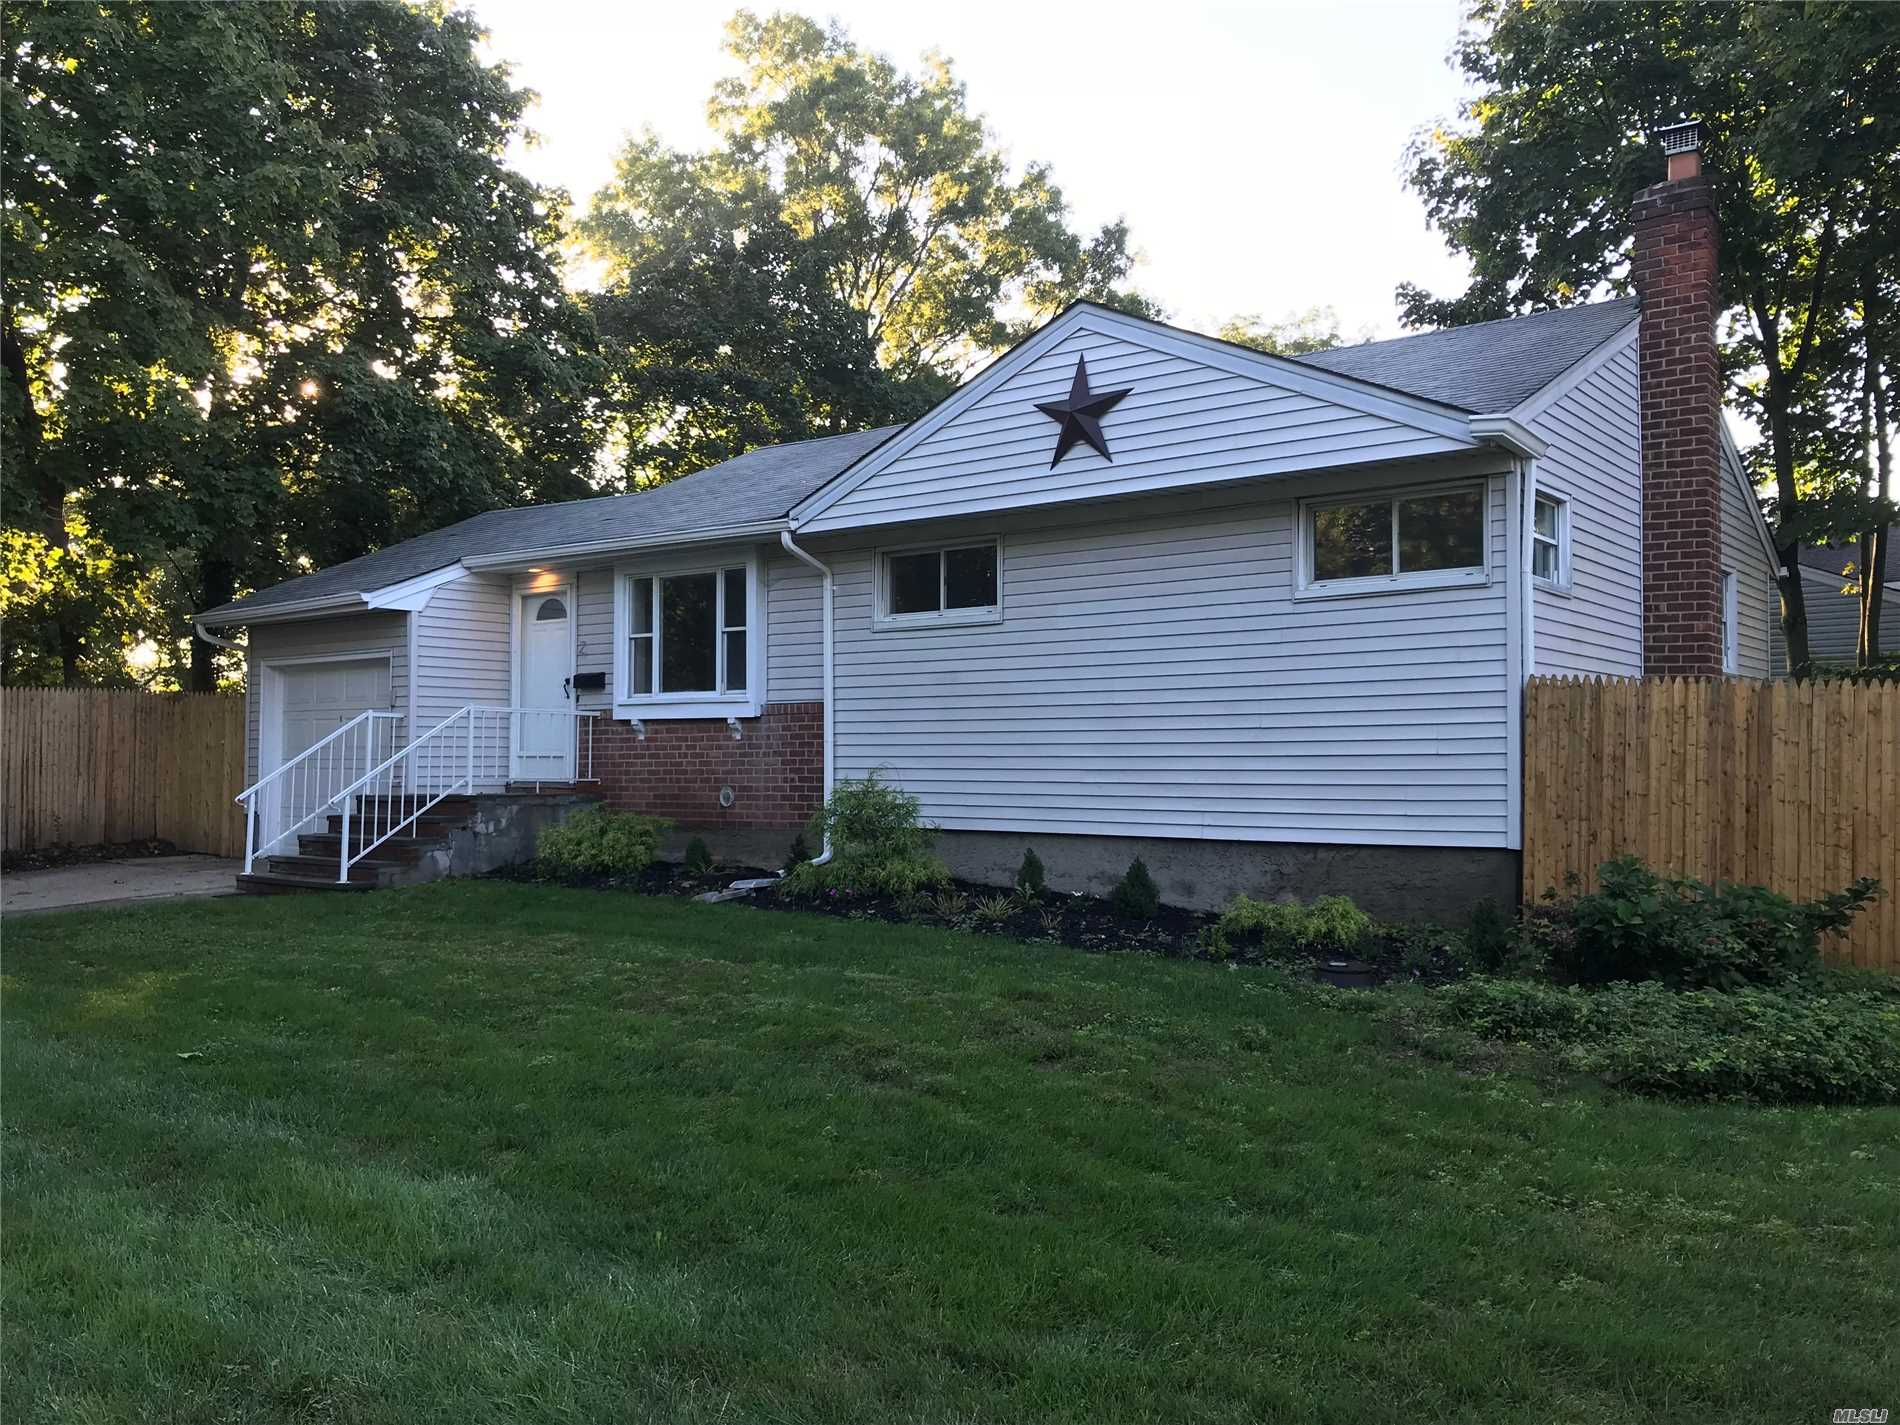 Beauitful Renovated Ranch Great Area Cac All Knew Appliances Ss Granite Kitchen.Bath Paint Oak Floors